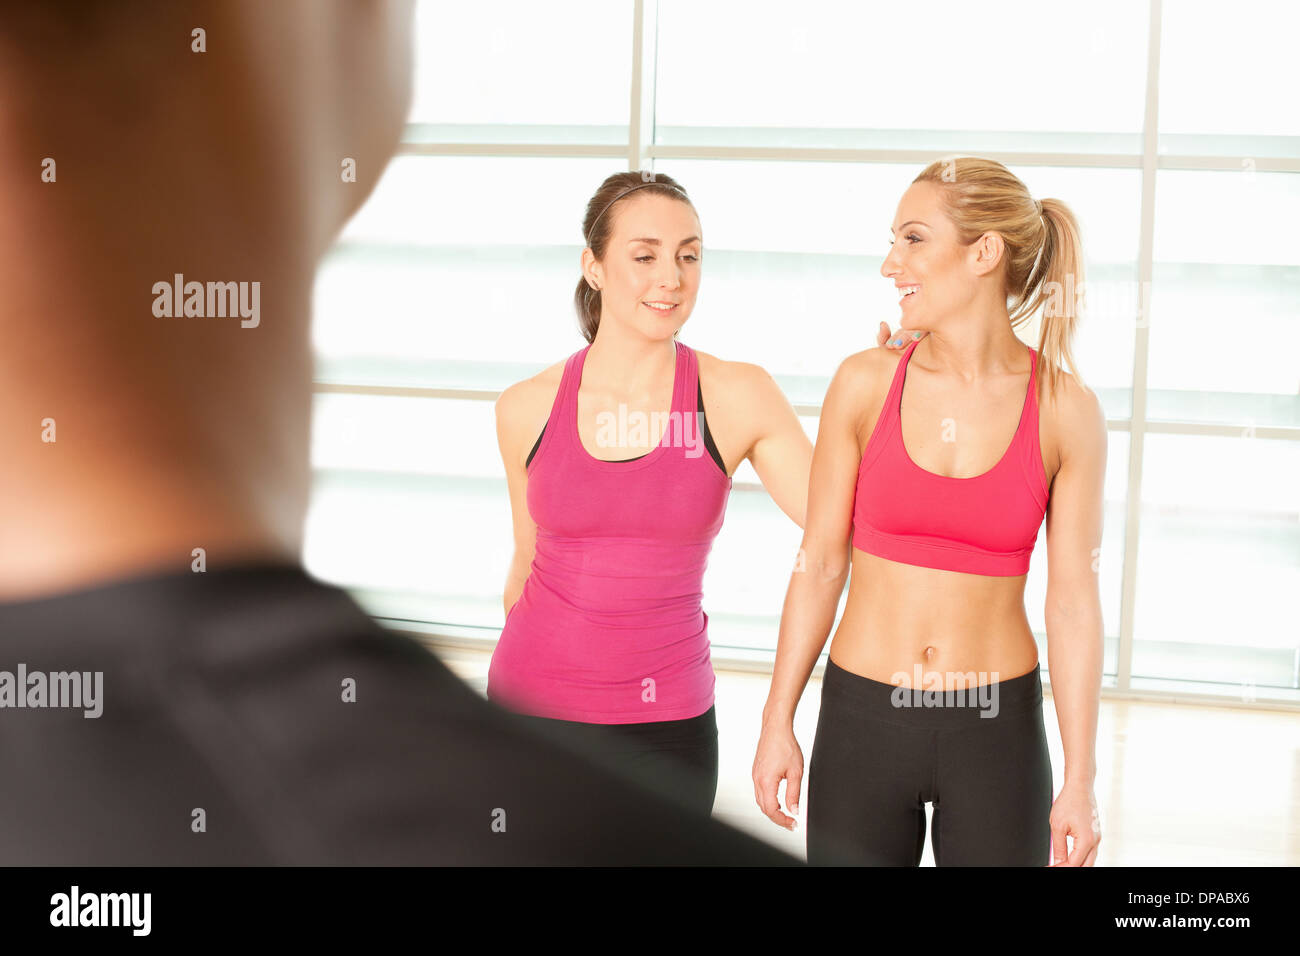 Women standing together in exercise class - Stock Image